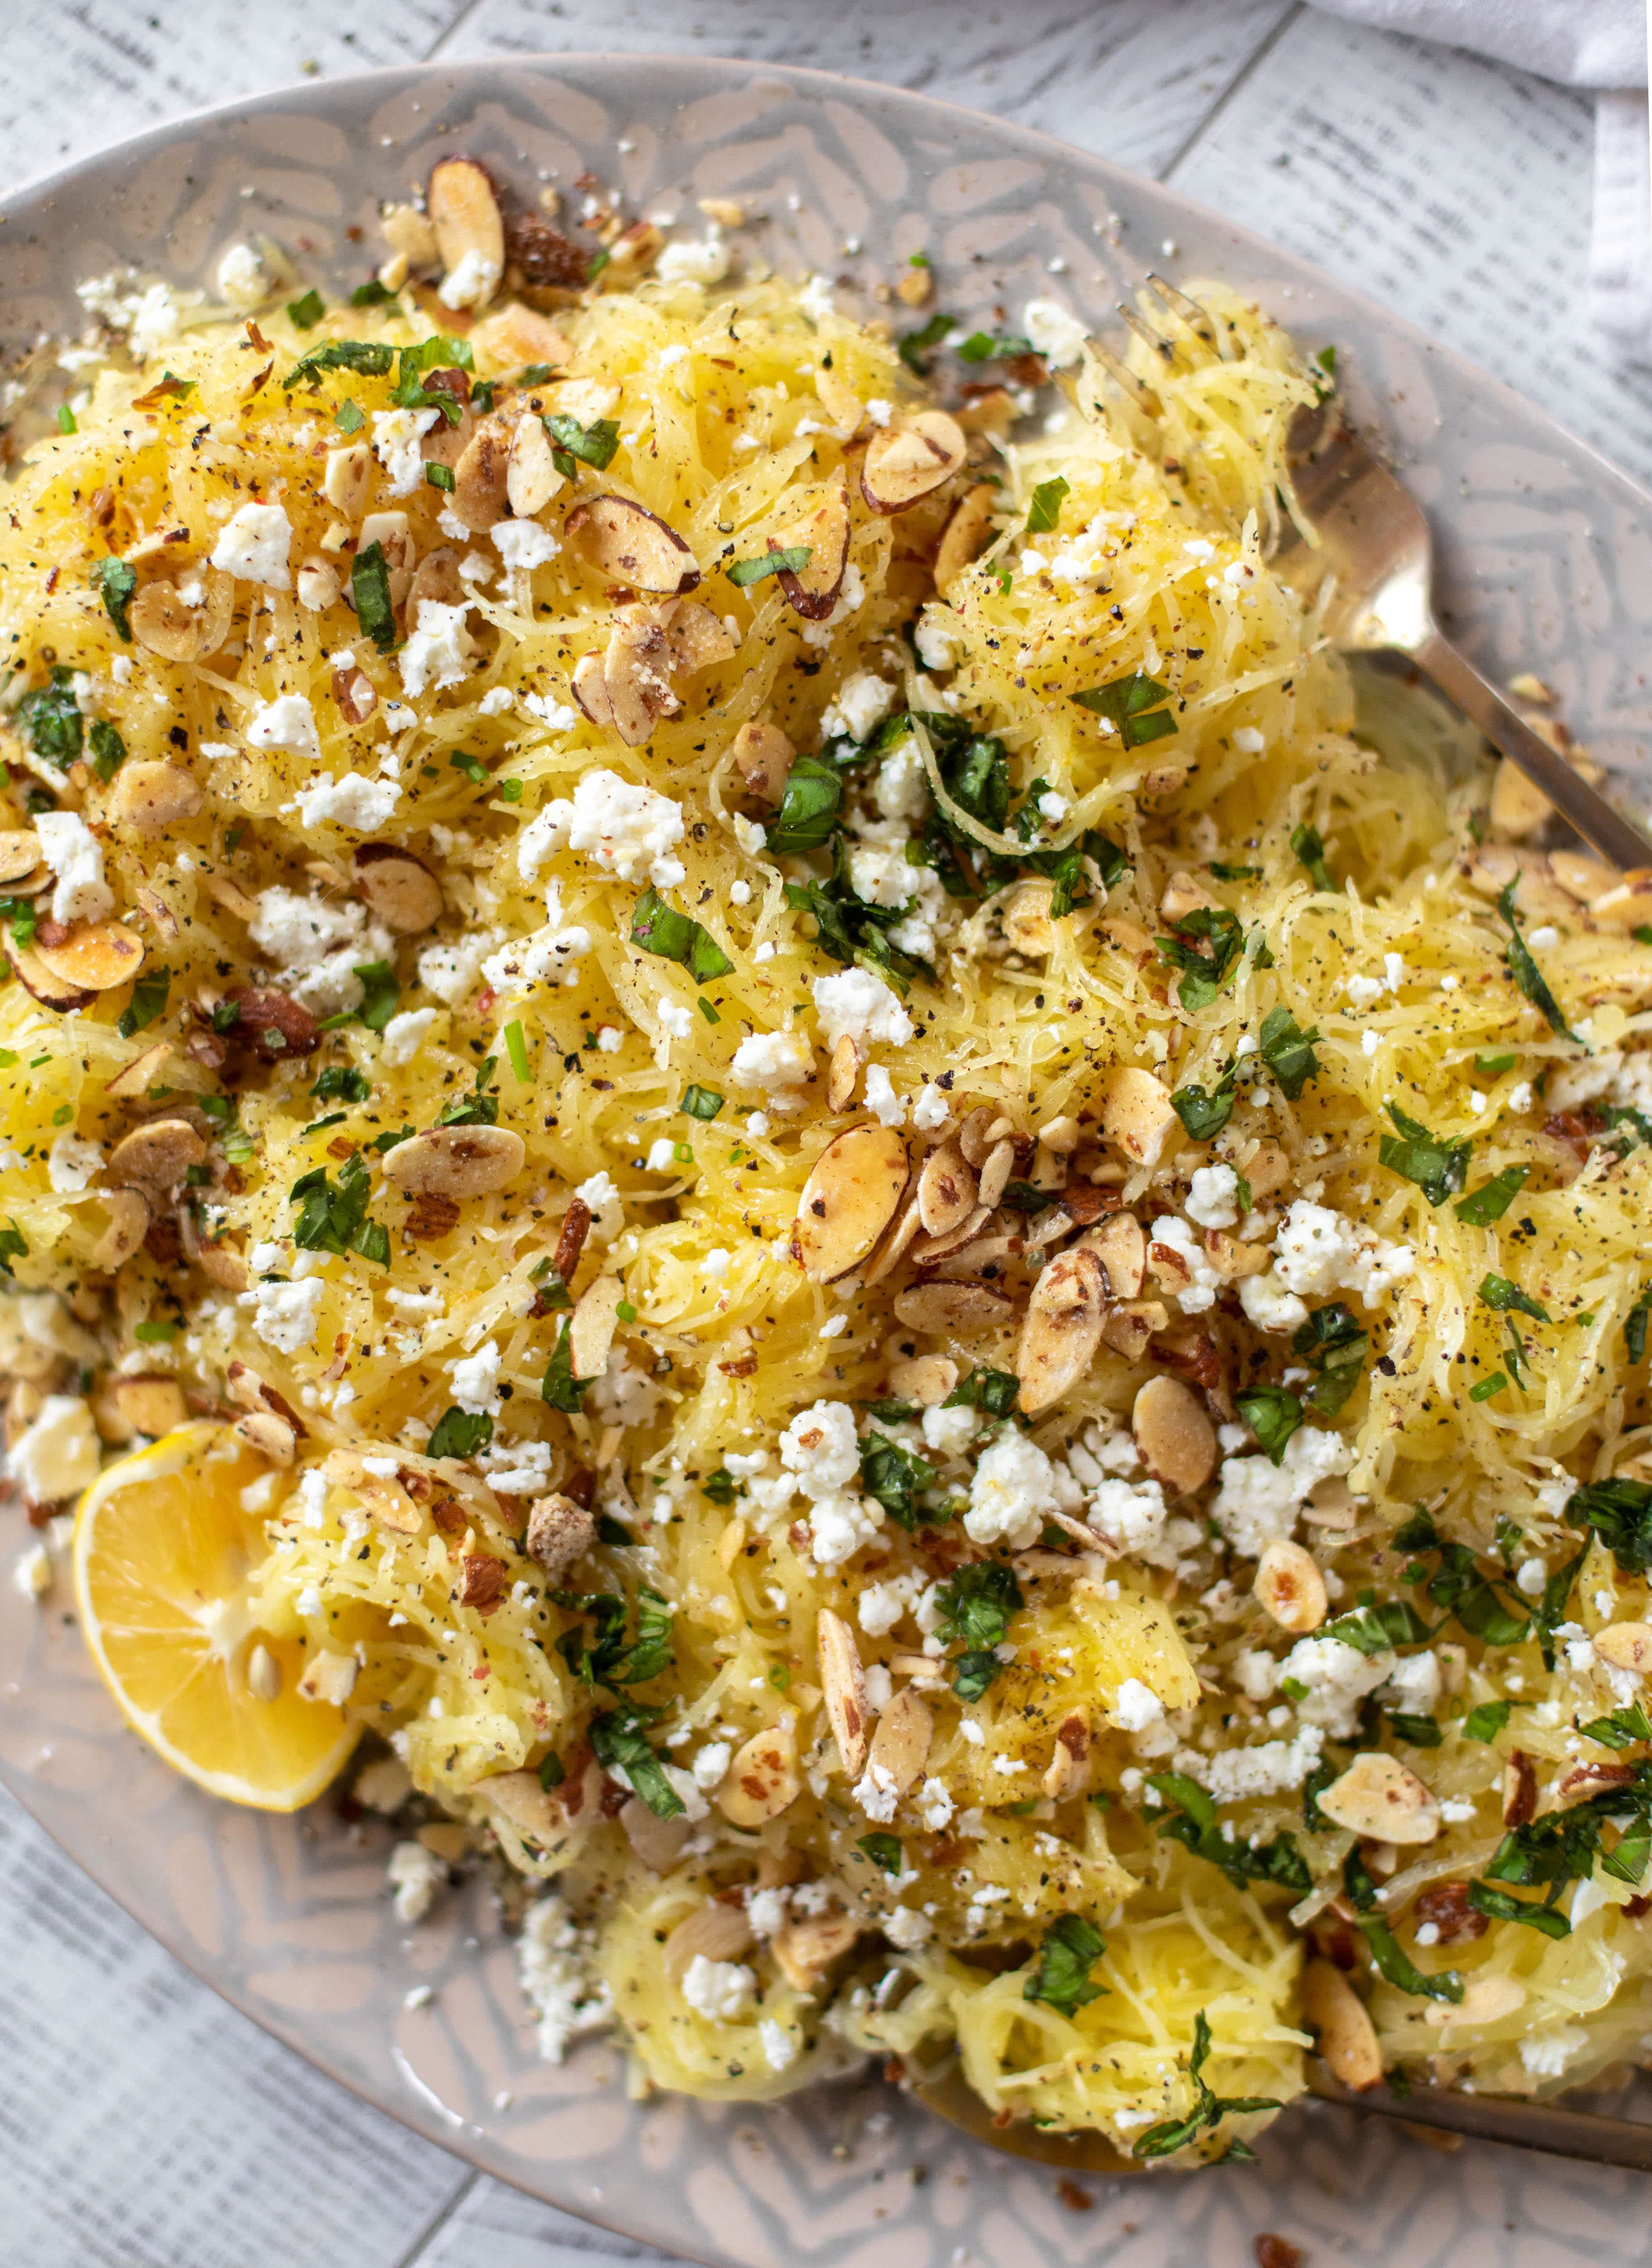 This lemon spaghetti squash is tossed in a lemon garlic butter and topped with feta, sliced toasted almonds and fresh herbs. It's delicious!